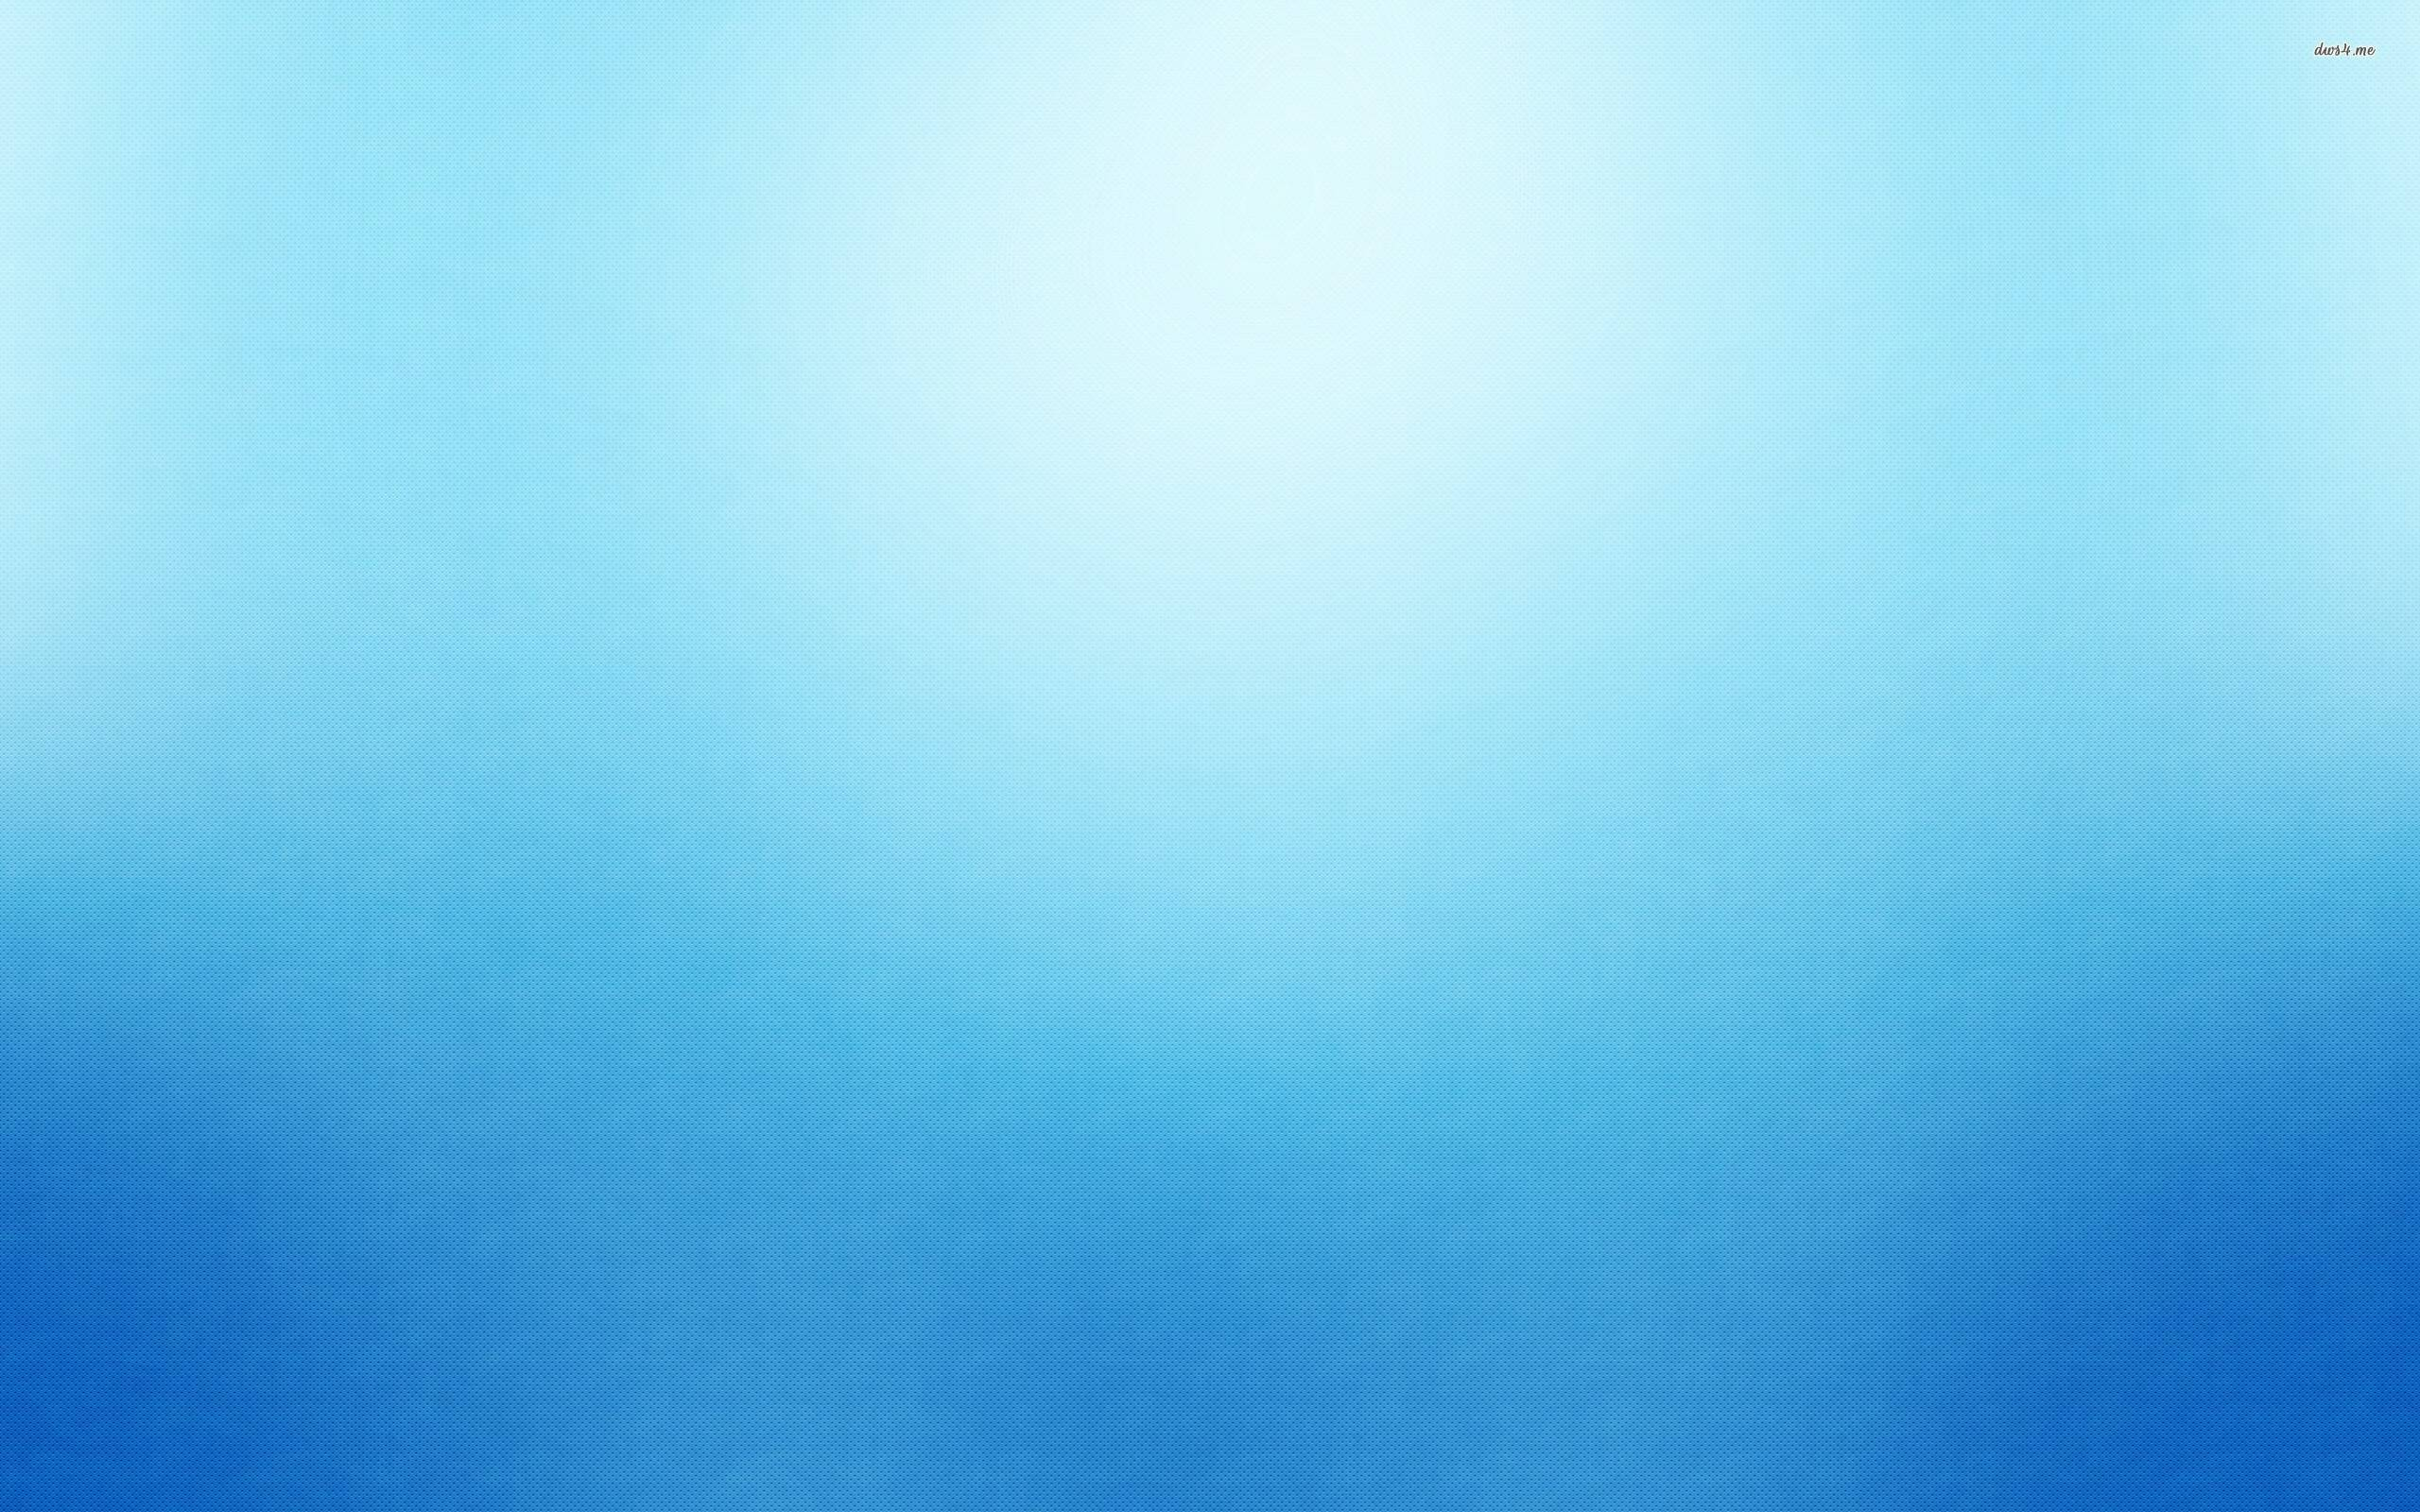 Light Blue Wallpapers - Top Free Light Blue Backgrounds